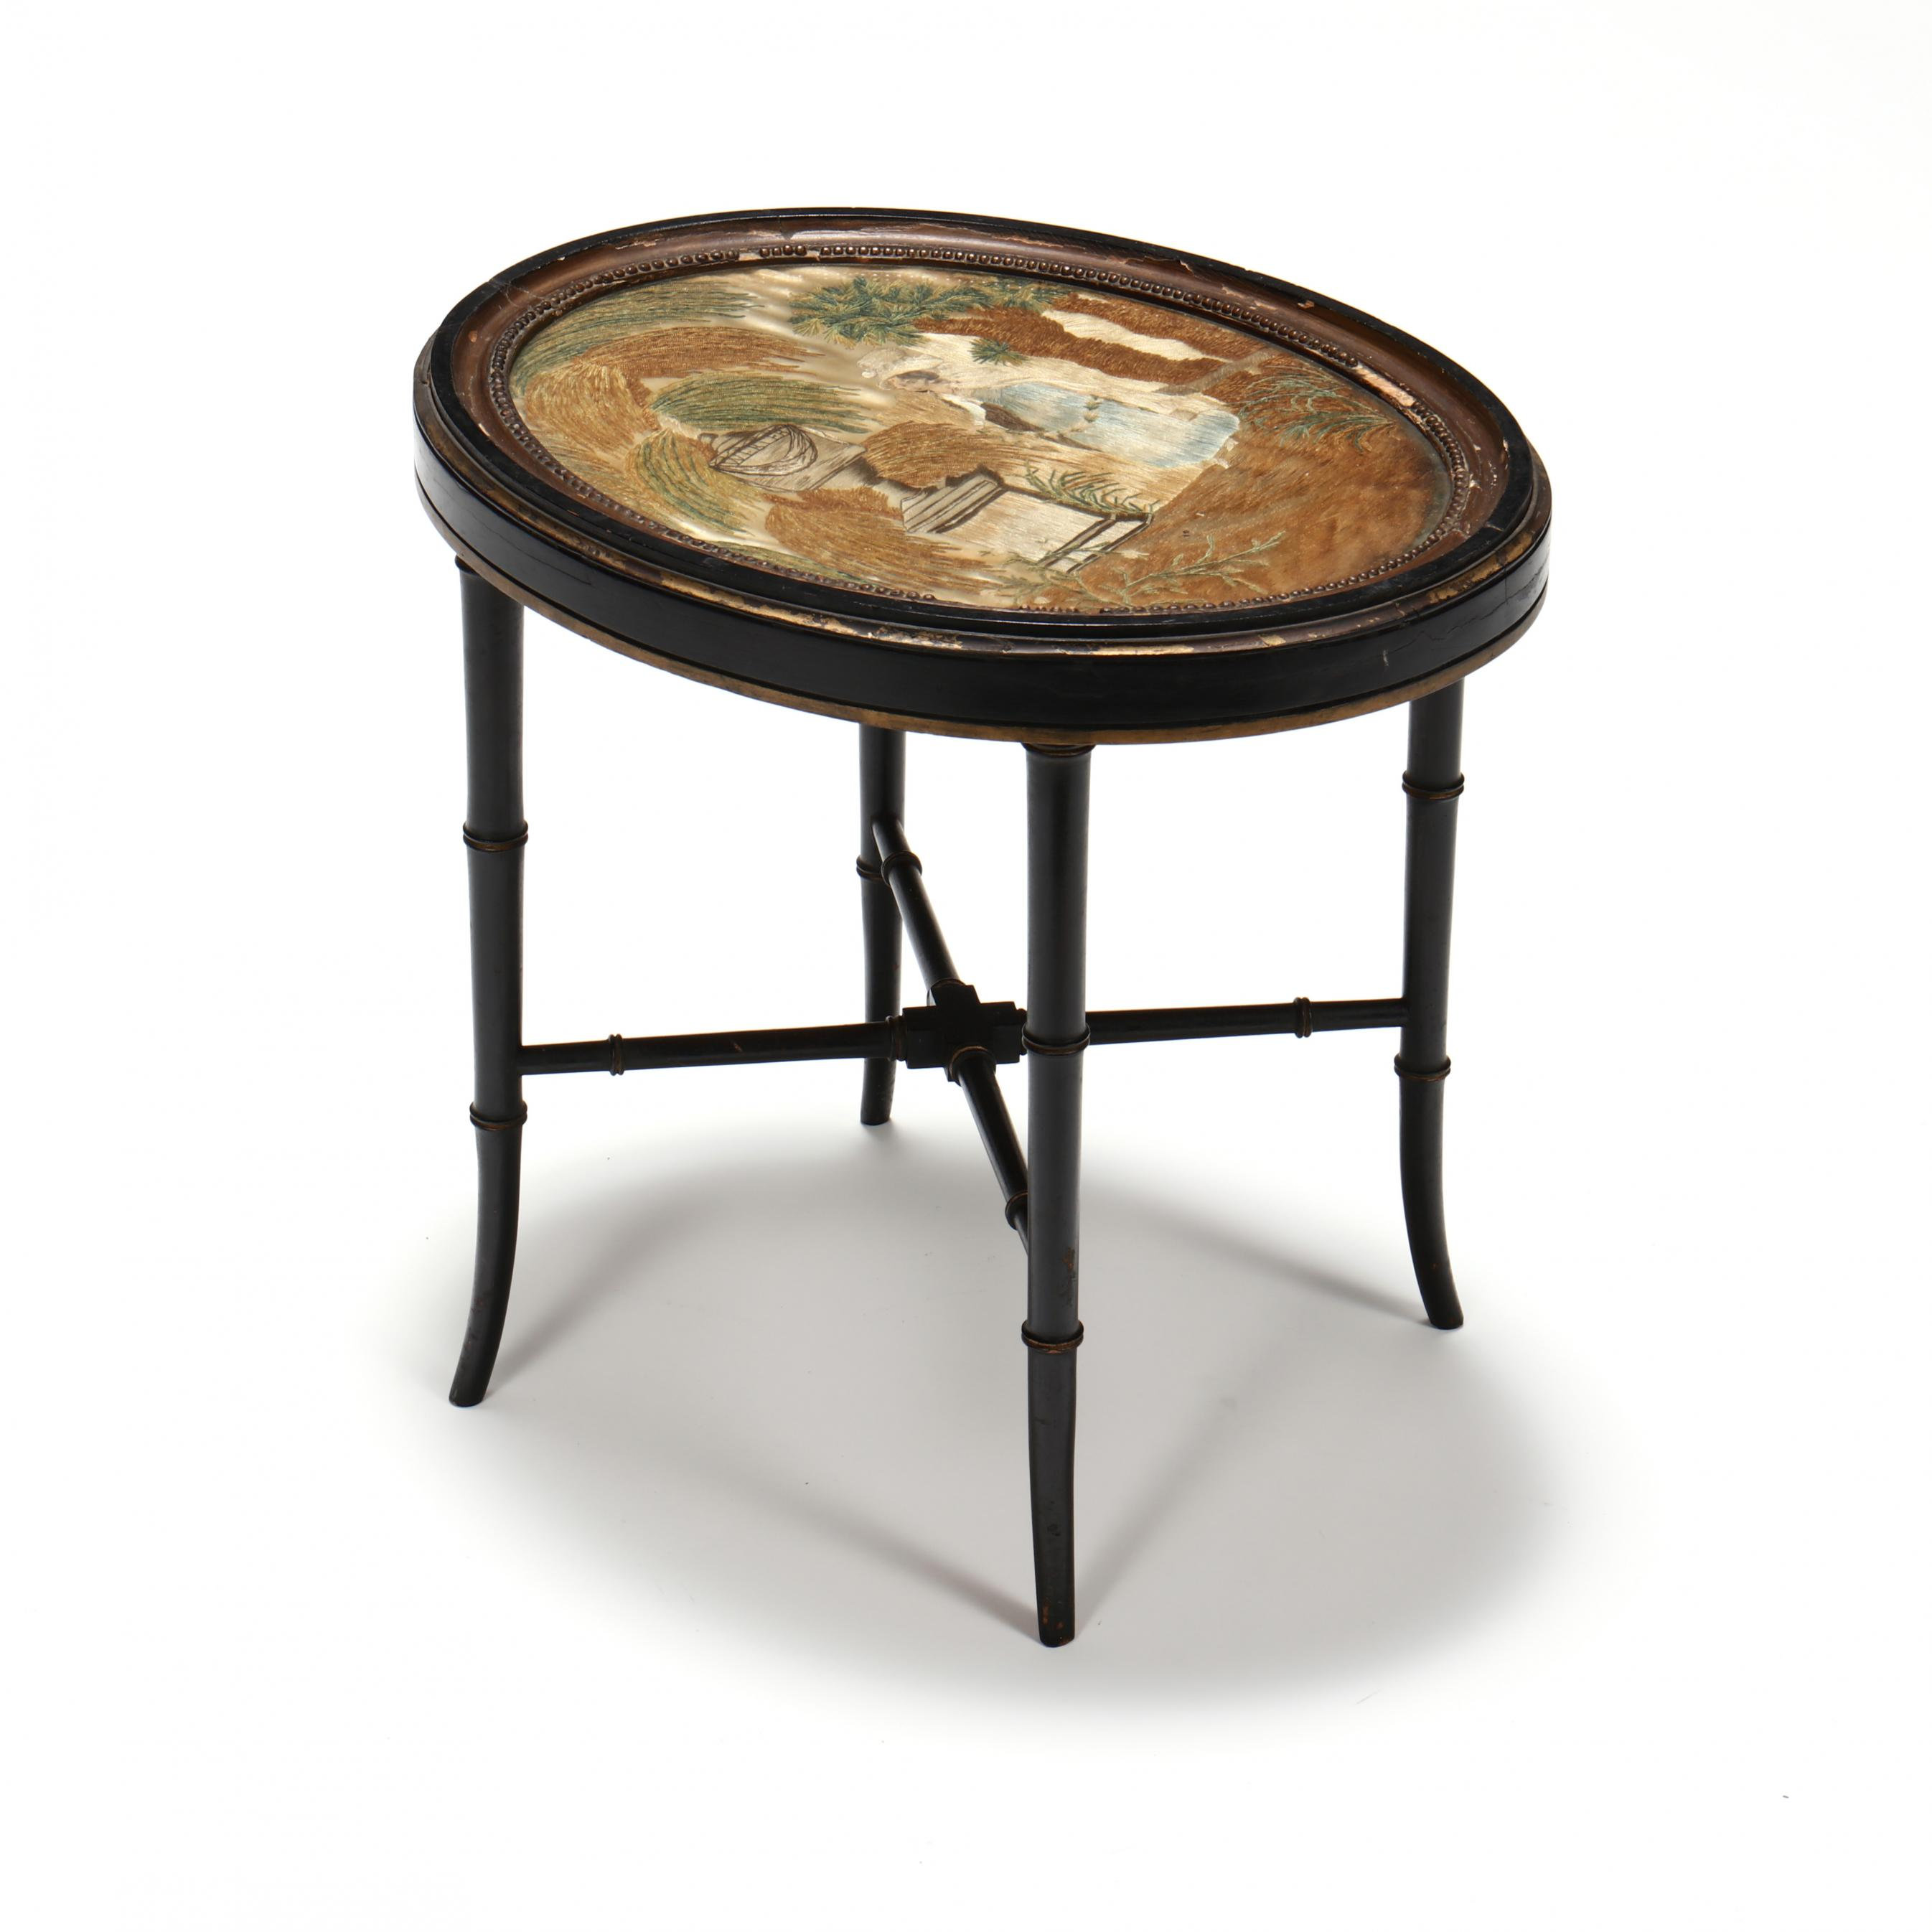 vintage-faux-bamboo-stand-with-antique-silk-mourning-embroidery-top